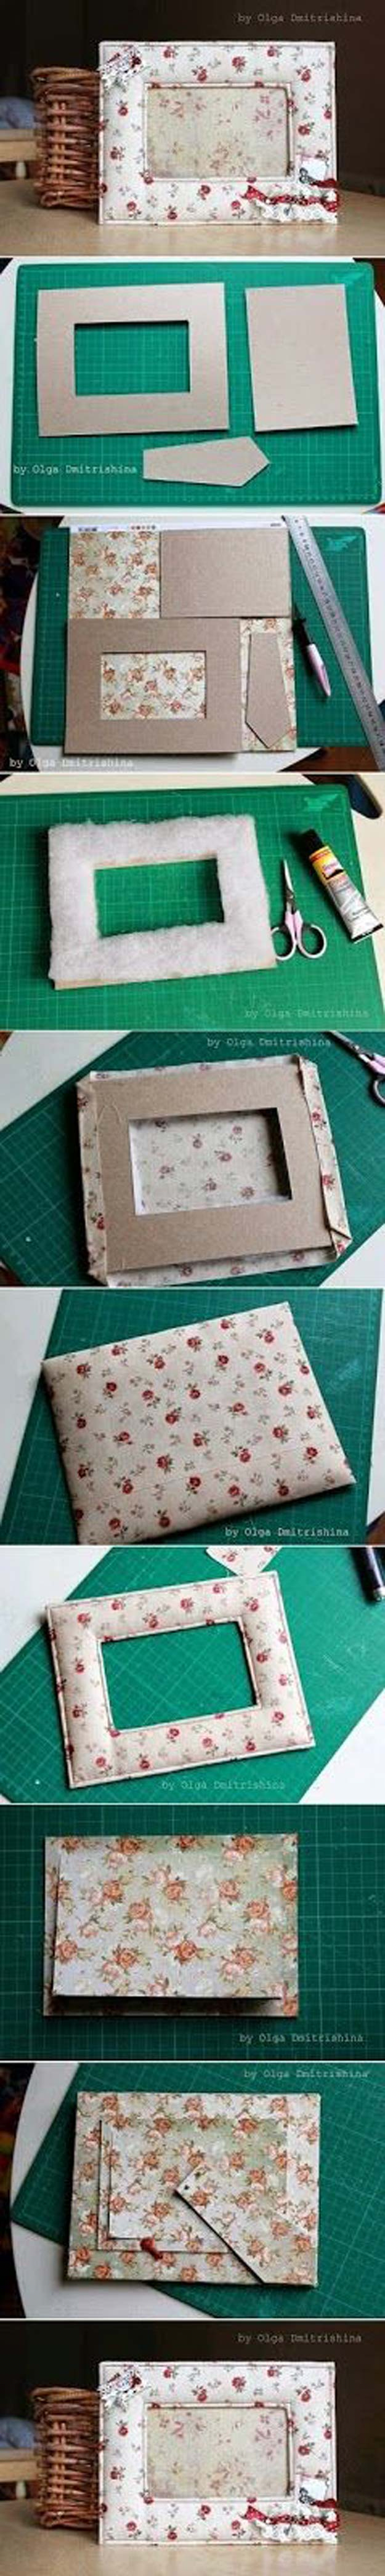 Best DIY Picture Frames and Photo Frame Ideas - Nice Soft Photo Frame - How To Make Cool Handmade Projects from Wood, Canvas, Instagram Photos. Creative Birthday Gifts, Fun Crafts for Friends and Wall Art Tutorials #diyideas #diygifts #teencrafts